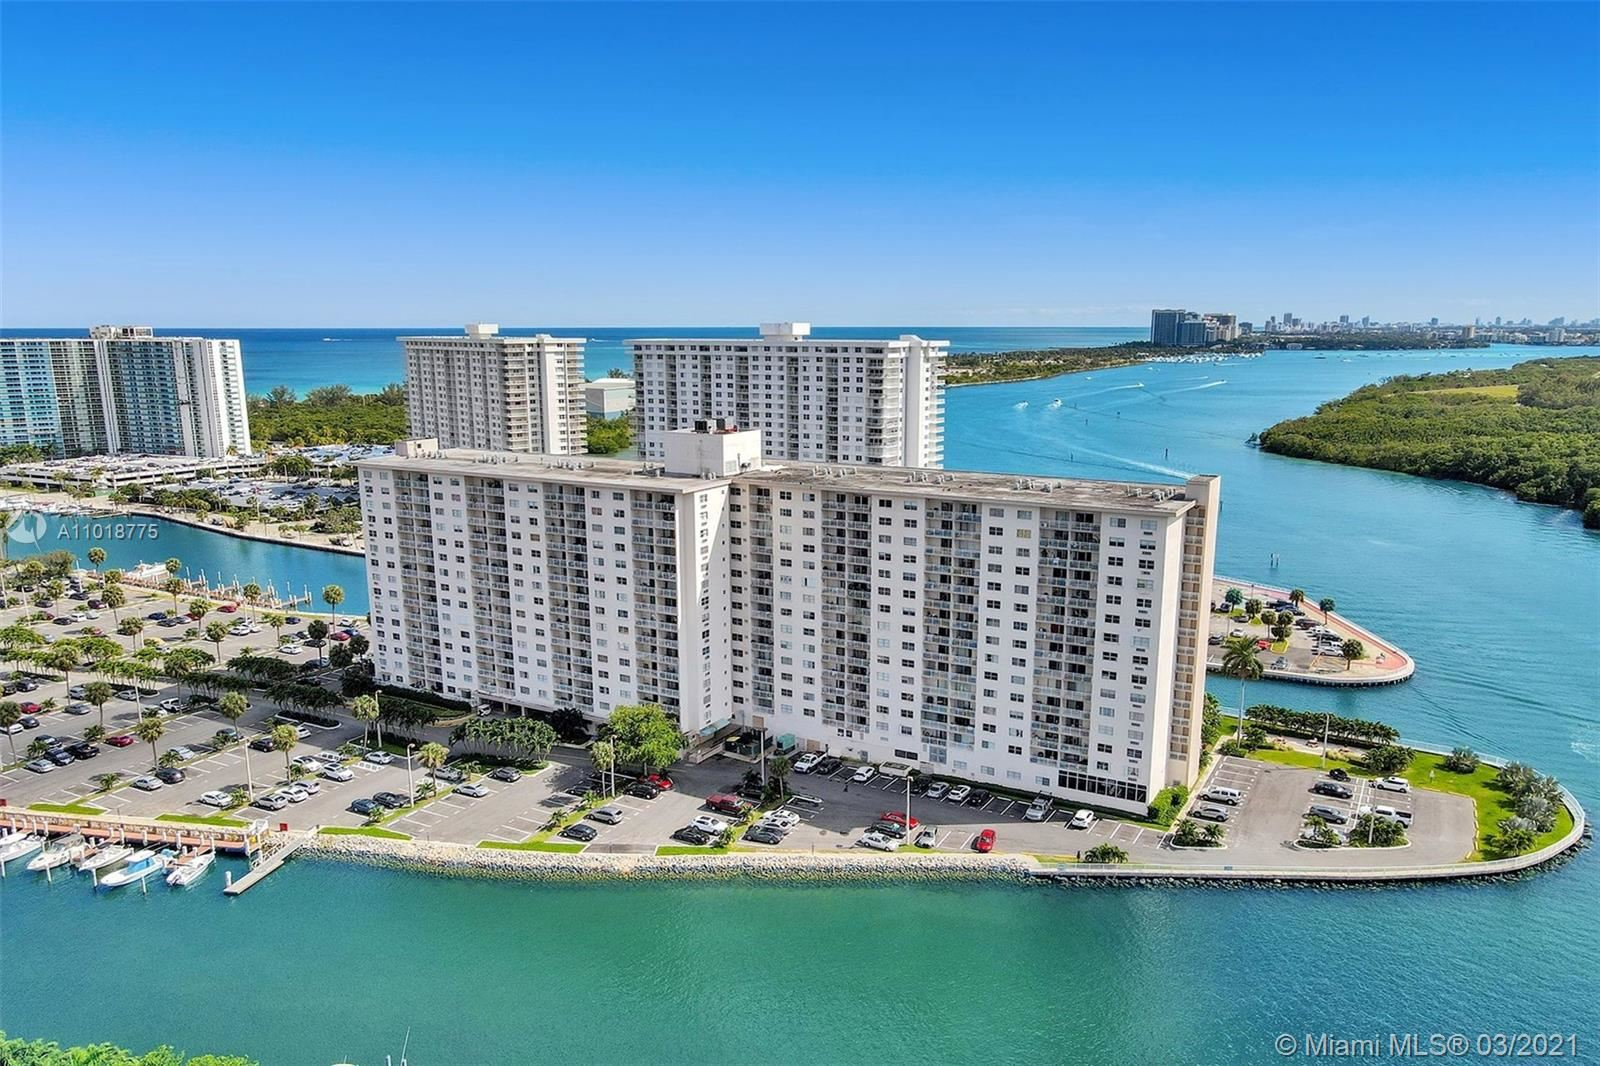 400 Kings Point Dr #308, Sunny Isles, FL 33160 - #: A11018775